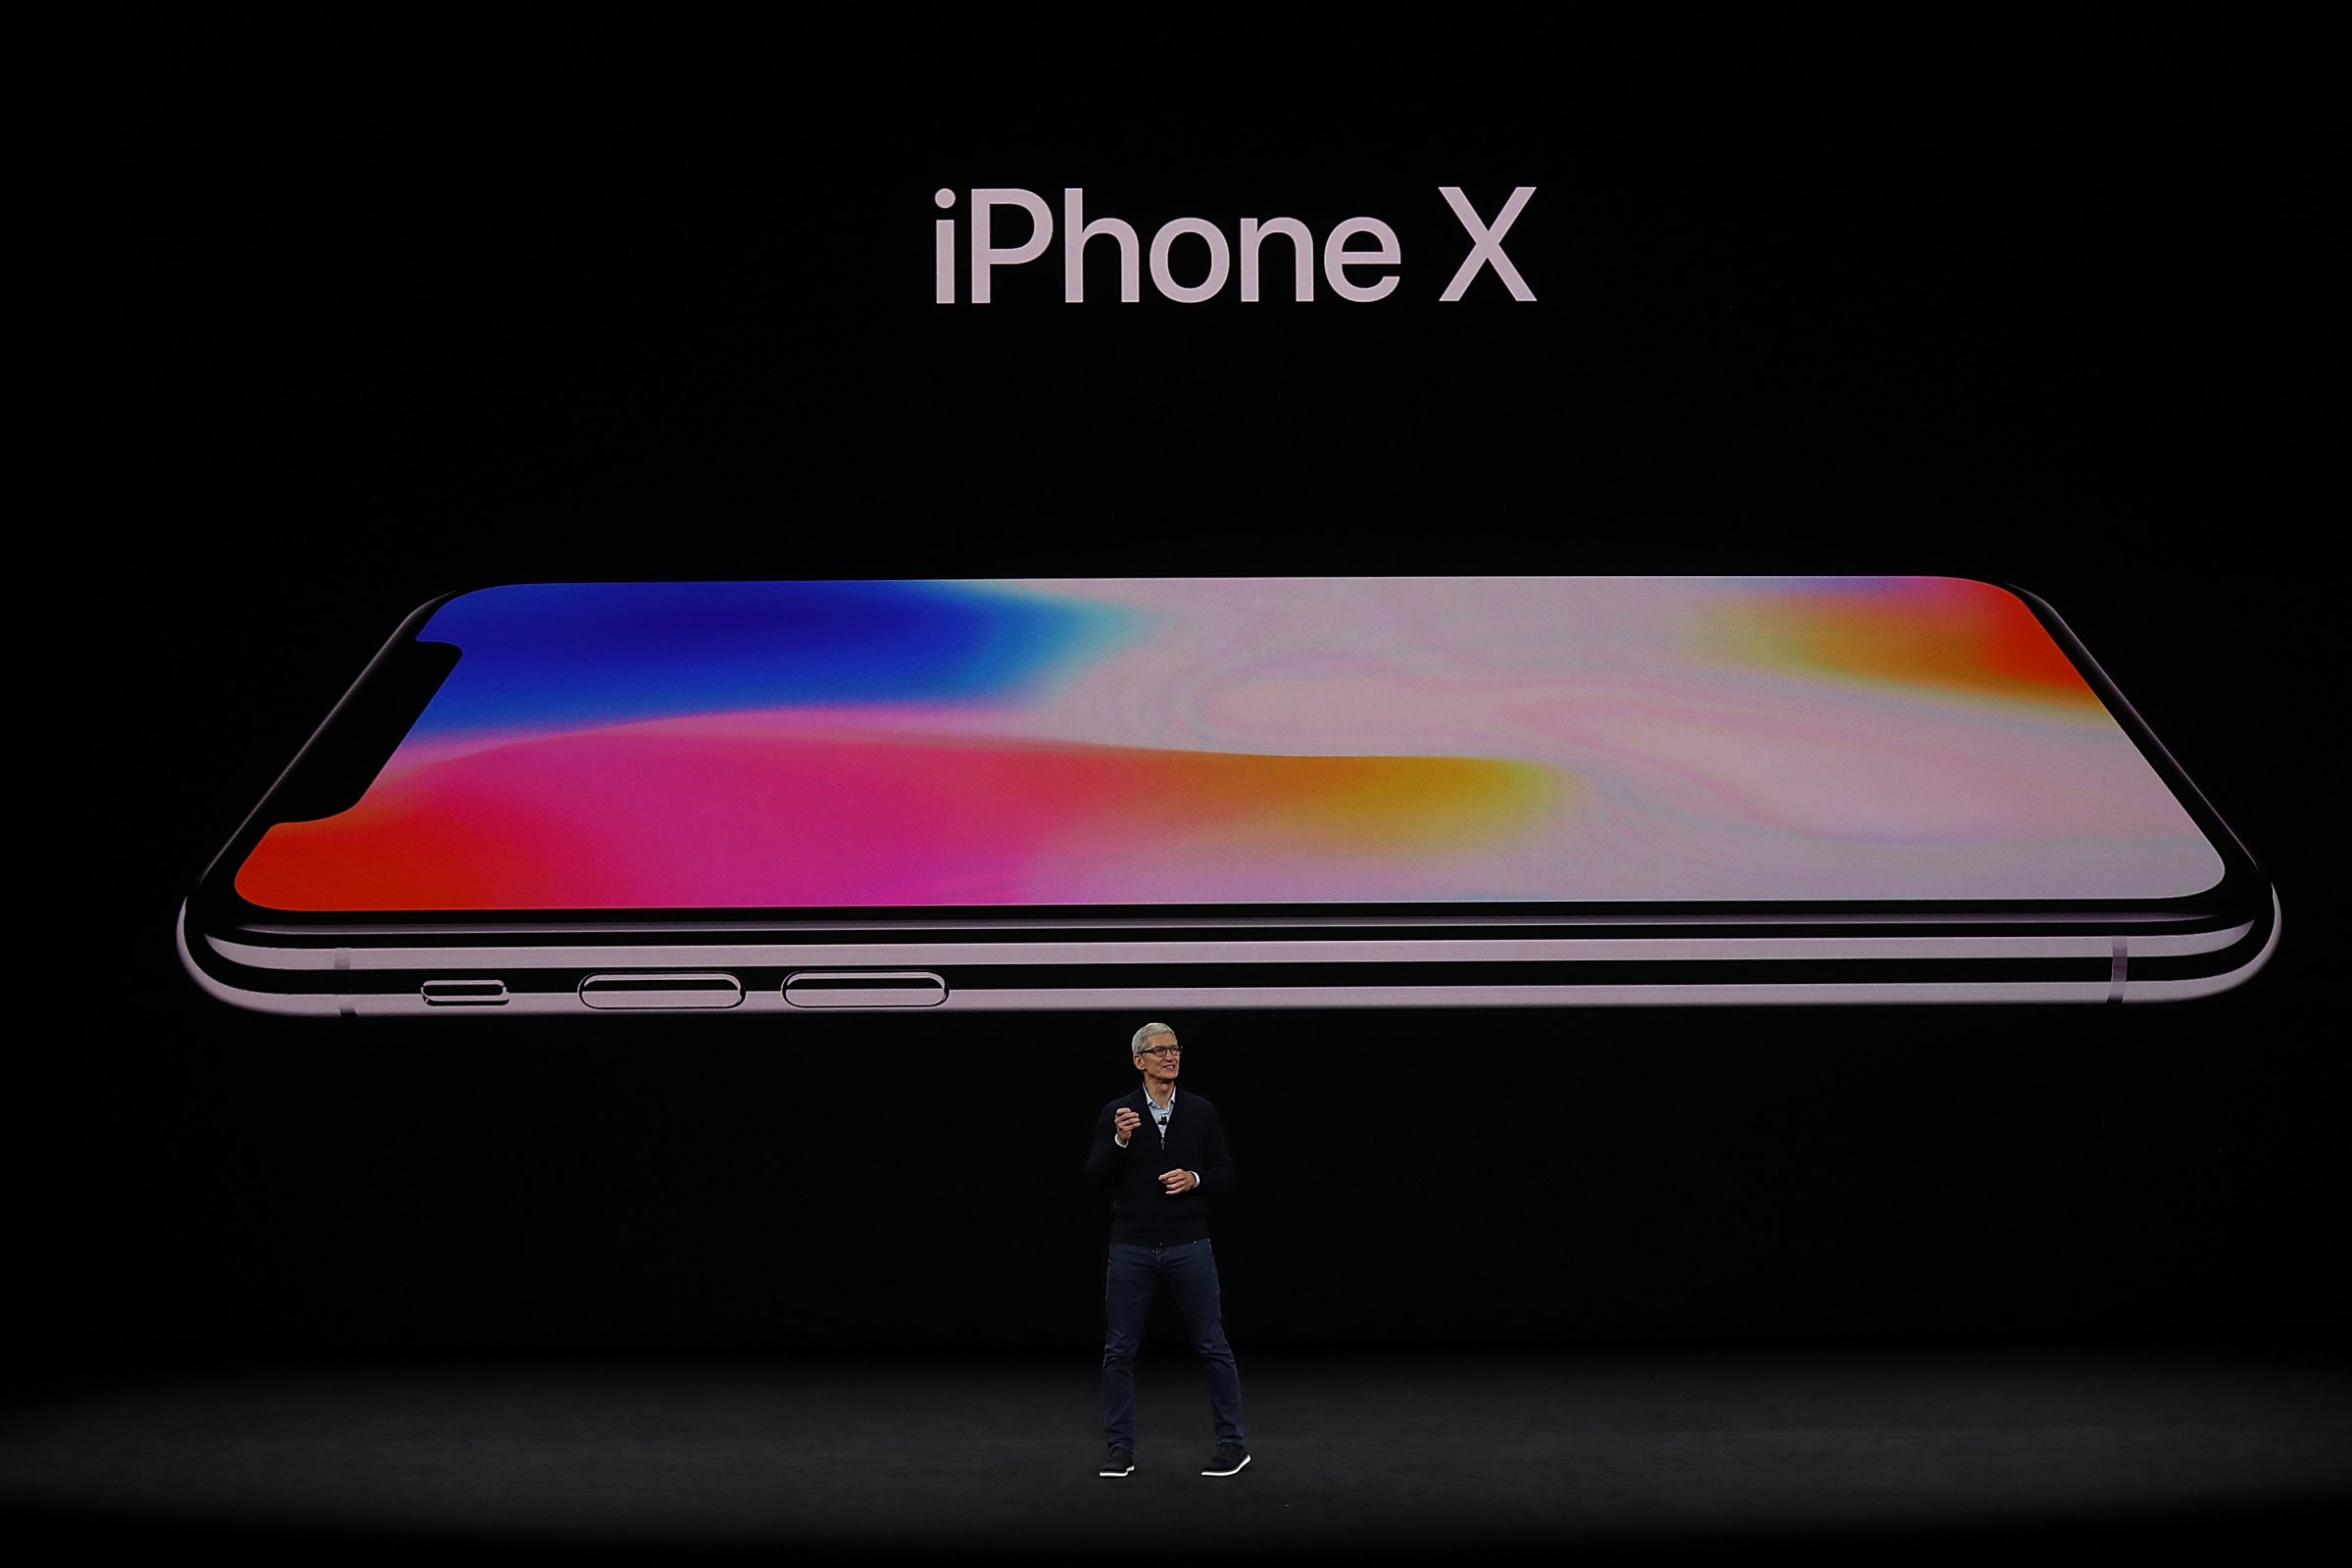 First photos and features of the new iPhone X